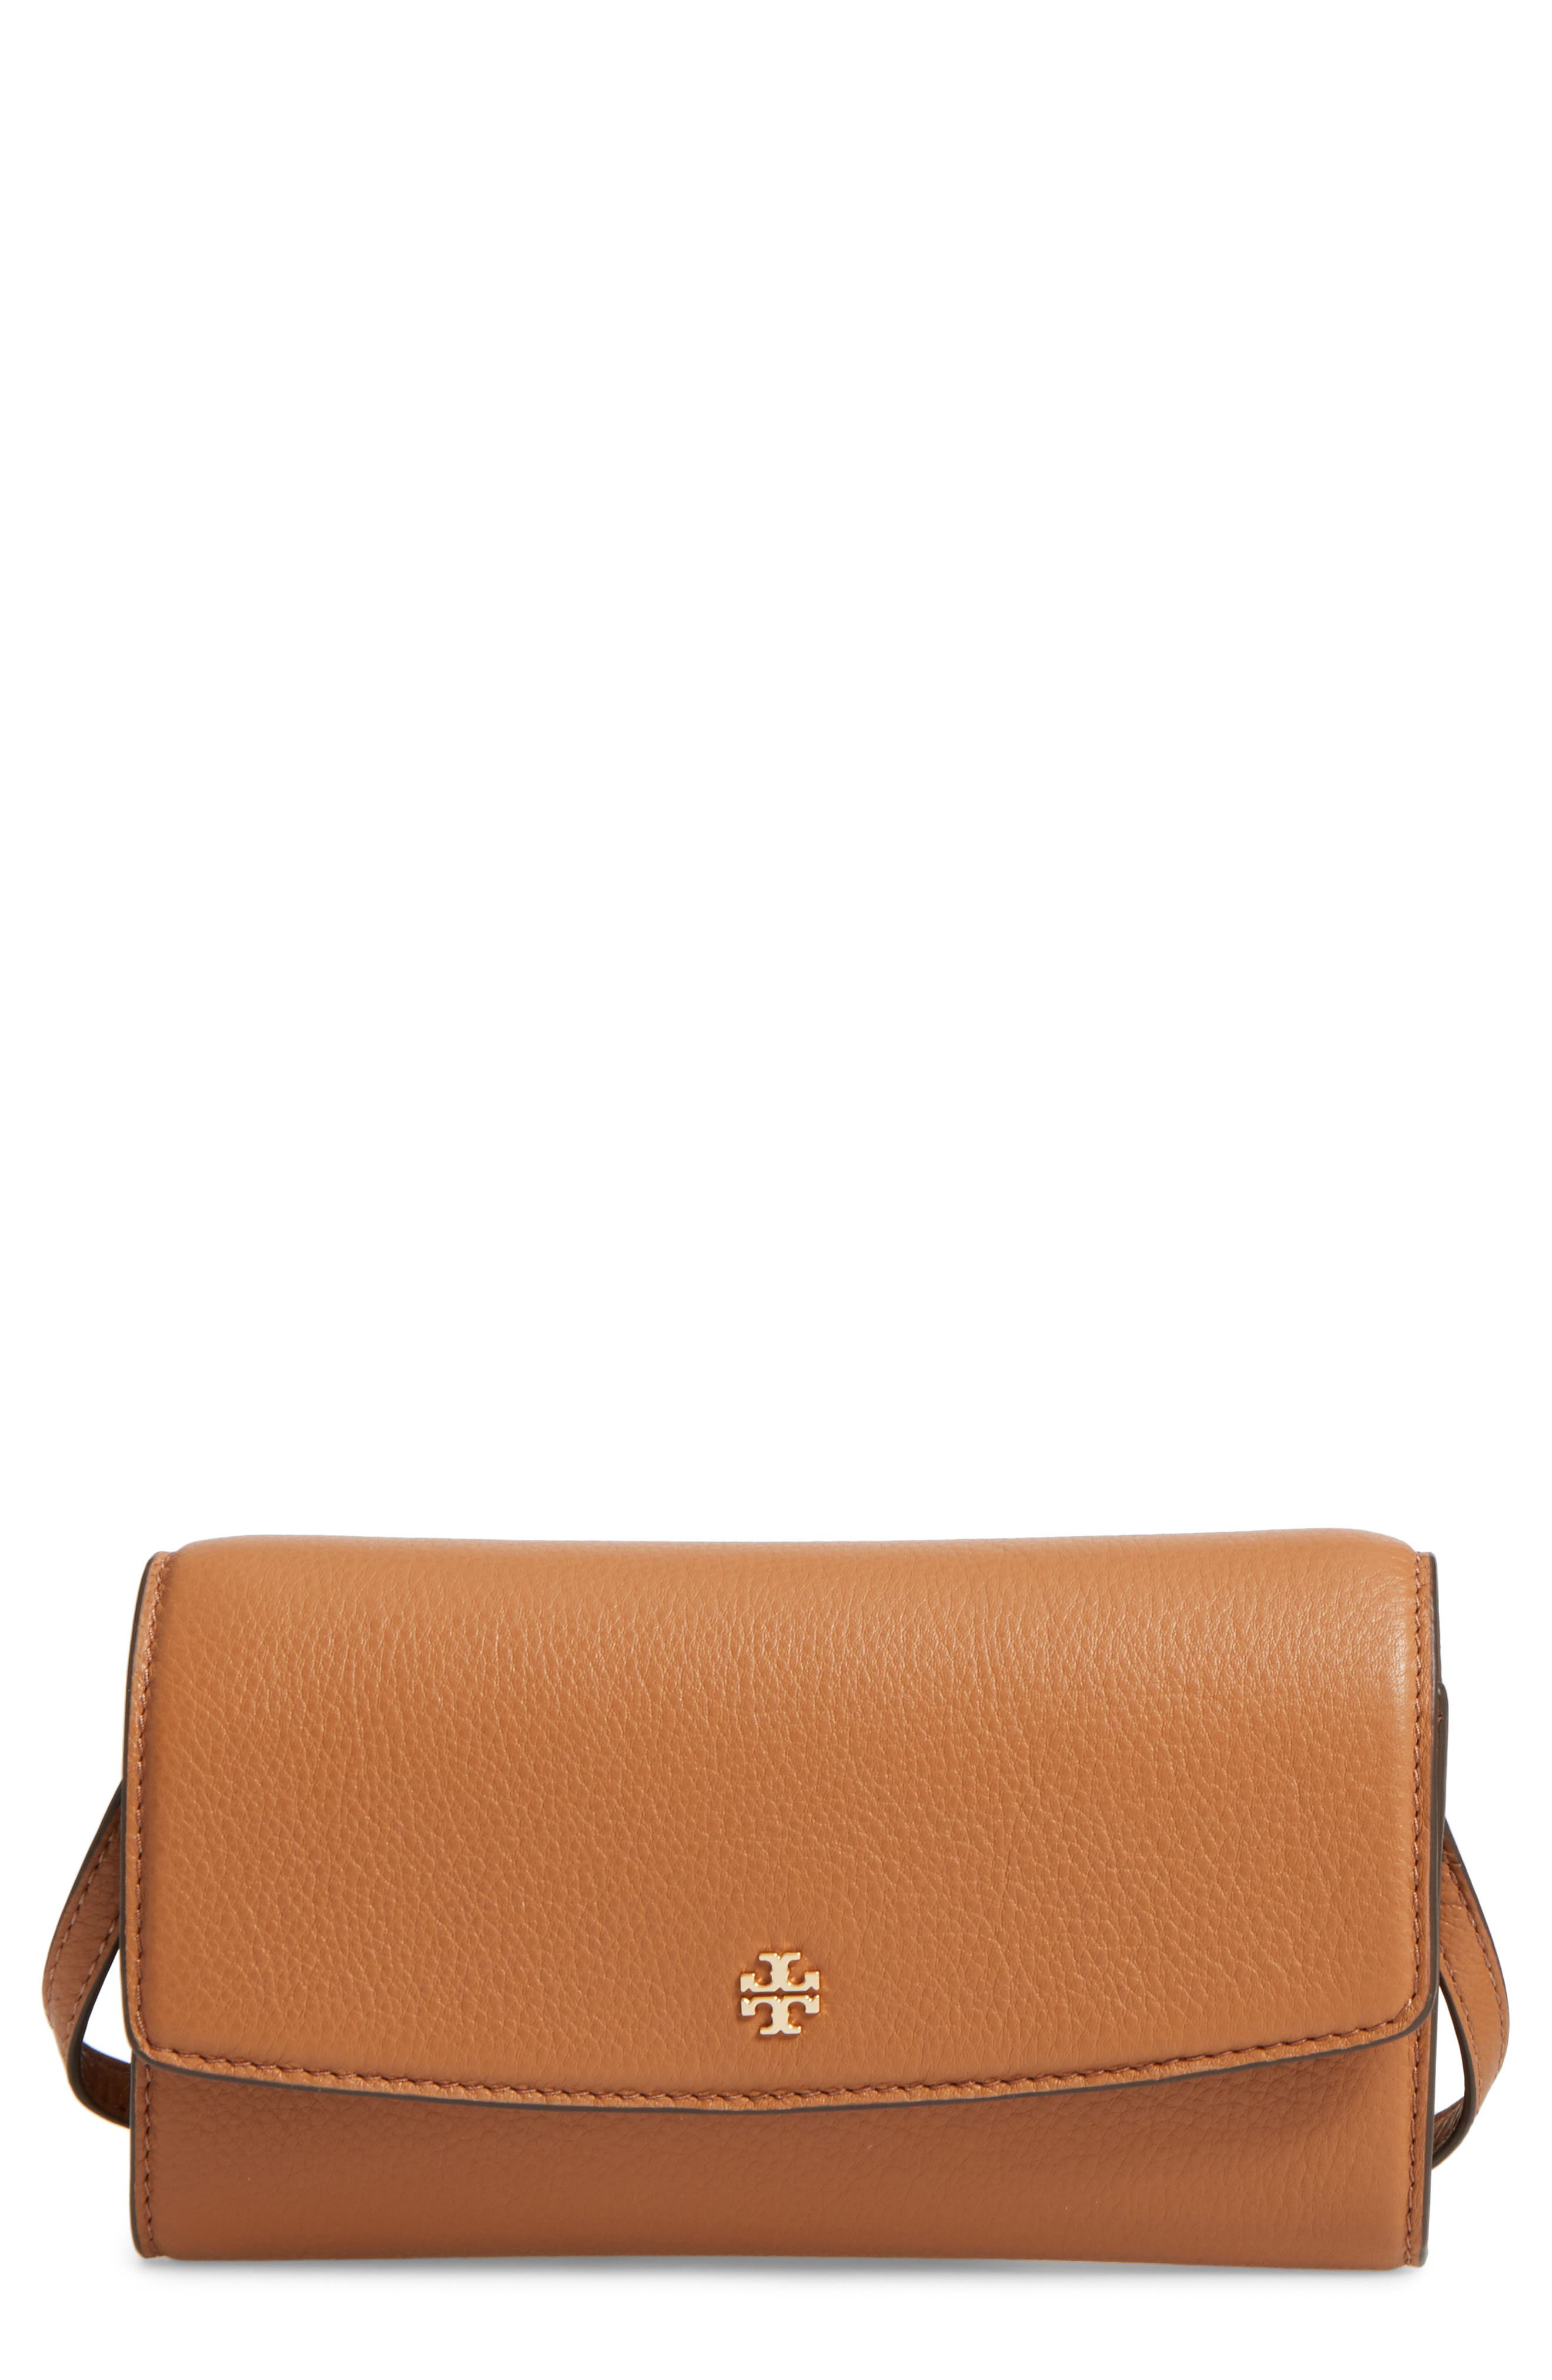 Leather Wallet Crossbody Bag,                         Main,                         color, 209